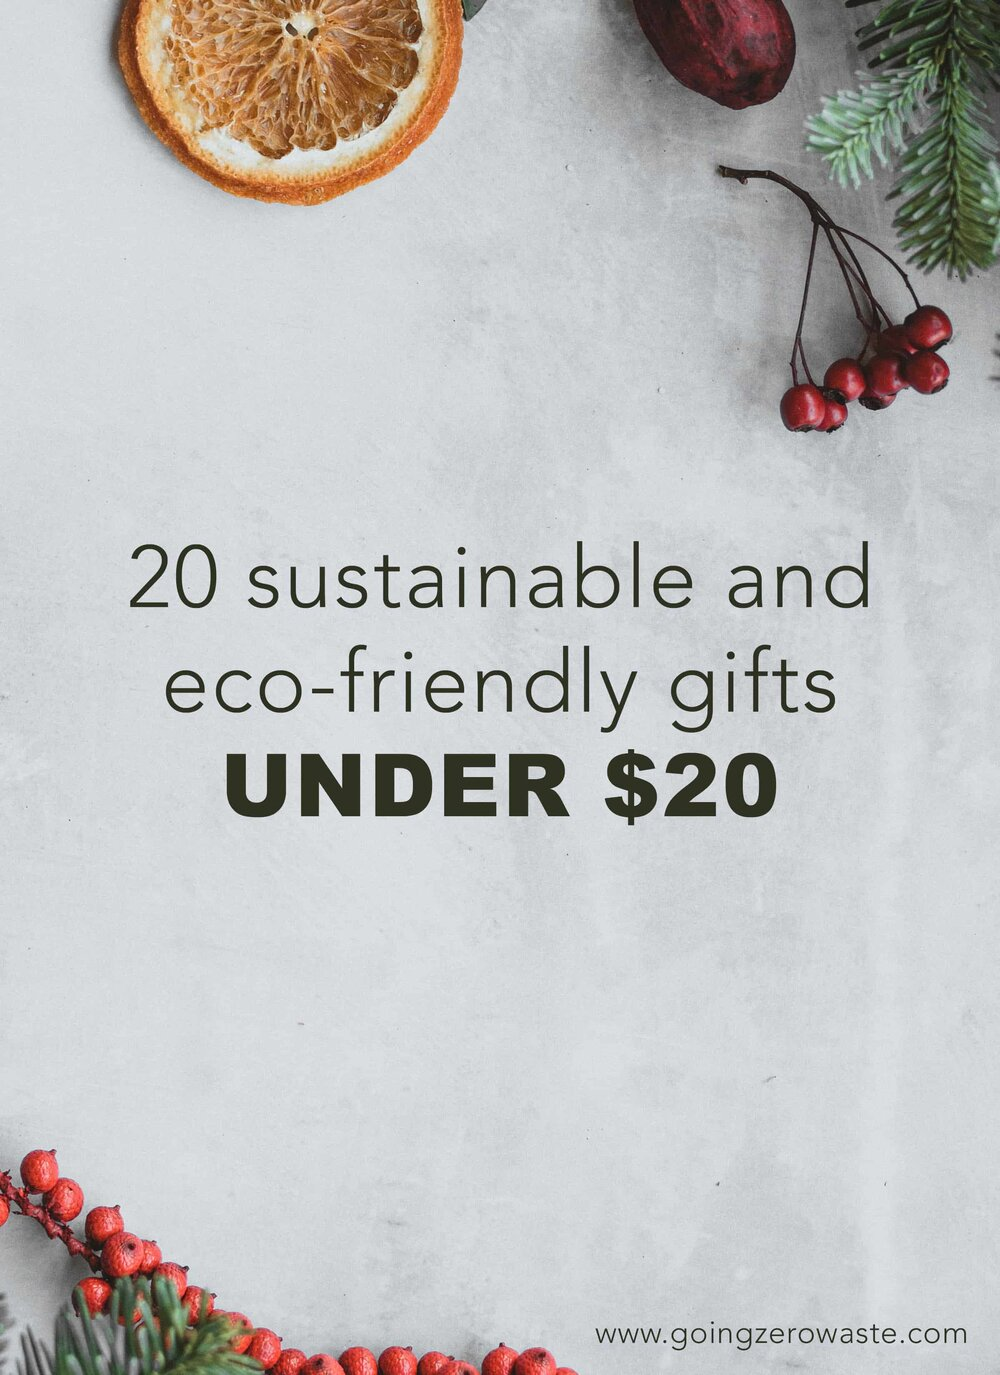 20 Sustainable Gifts under $20 from www.goingzerowaste.com #stockingstuffer #stockingfiller #ecofriendly #sustainable #sustainablegifts #zerowaste #eco #ecogfits #giftguide #sustainablestockings